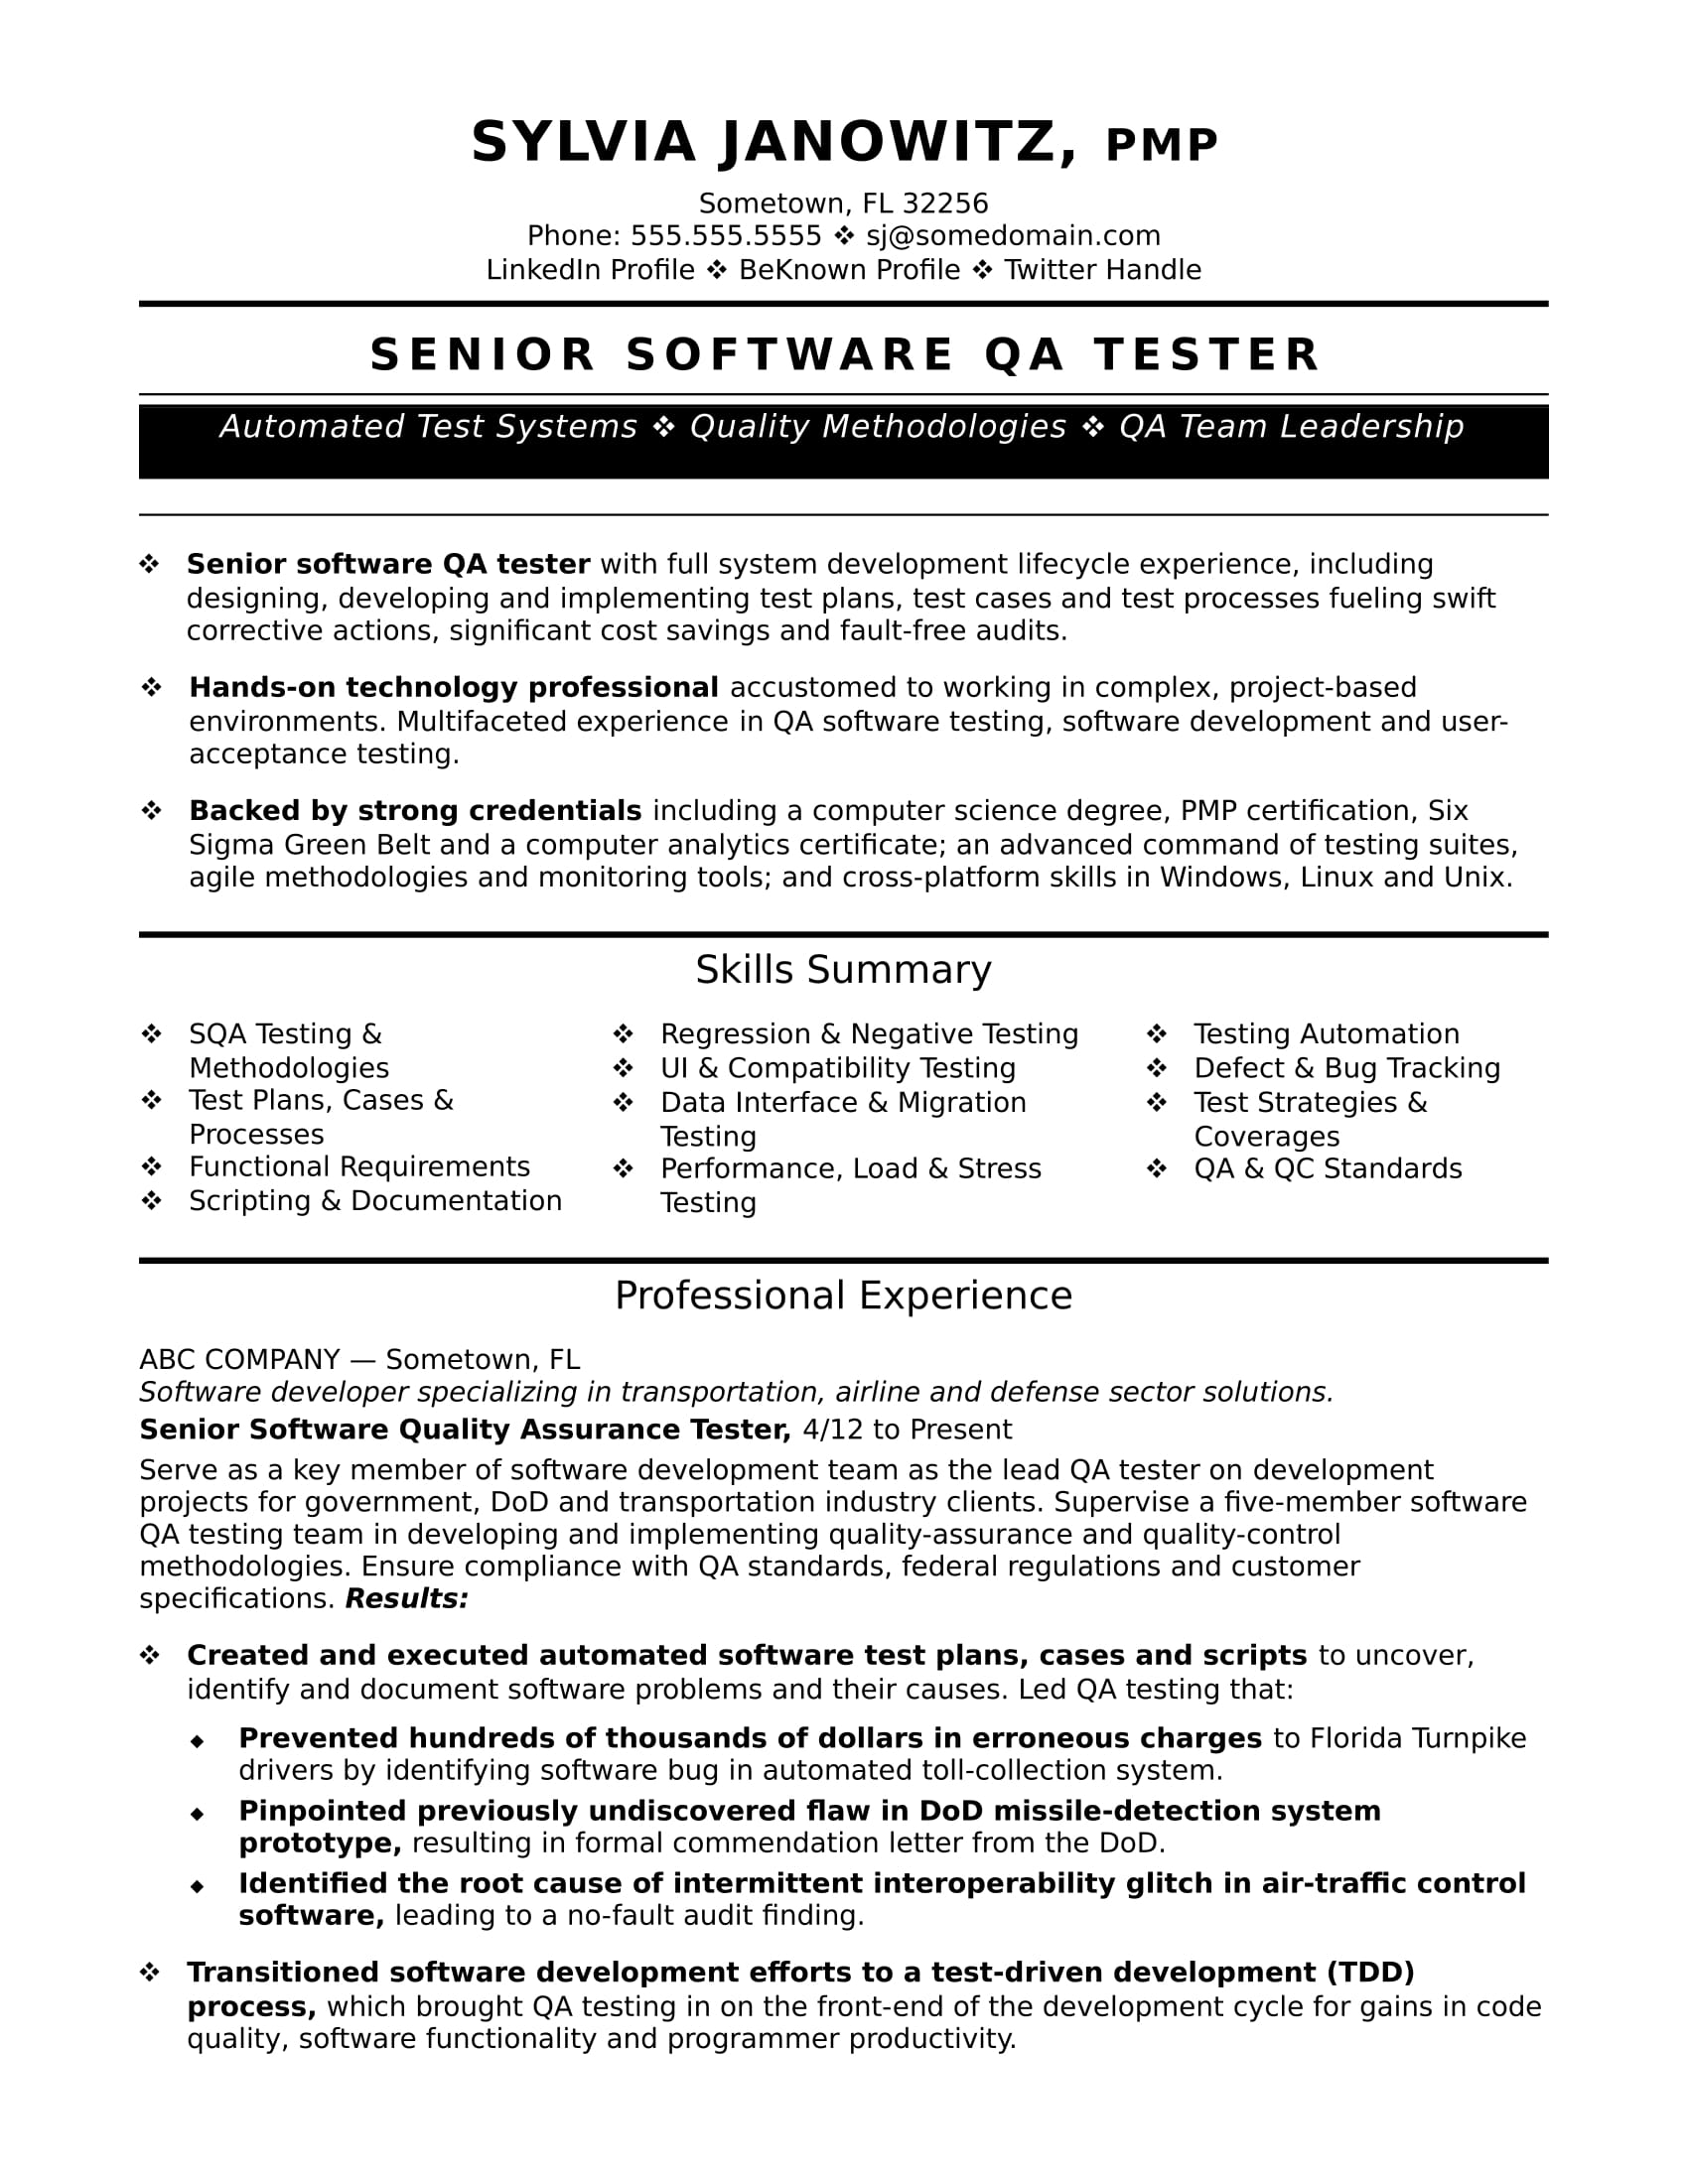 Quality Assurance Analyst Cover Letter Experienced Qa Software Tester Resume Sample Monster